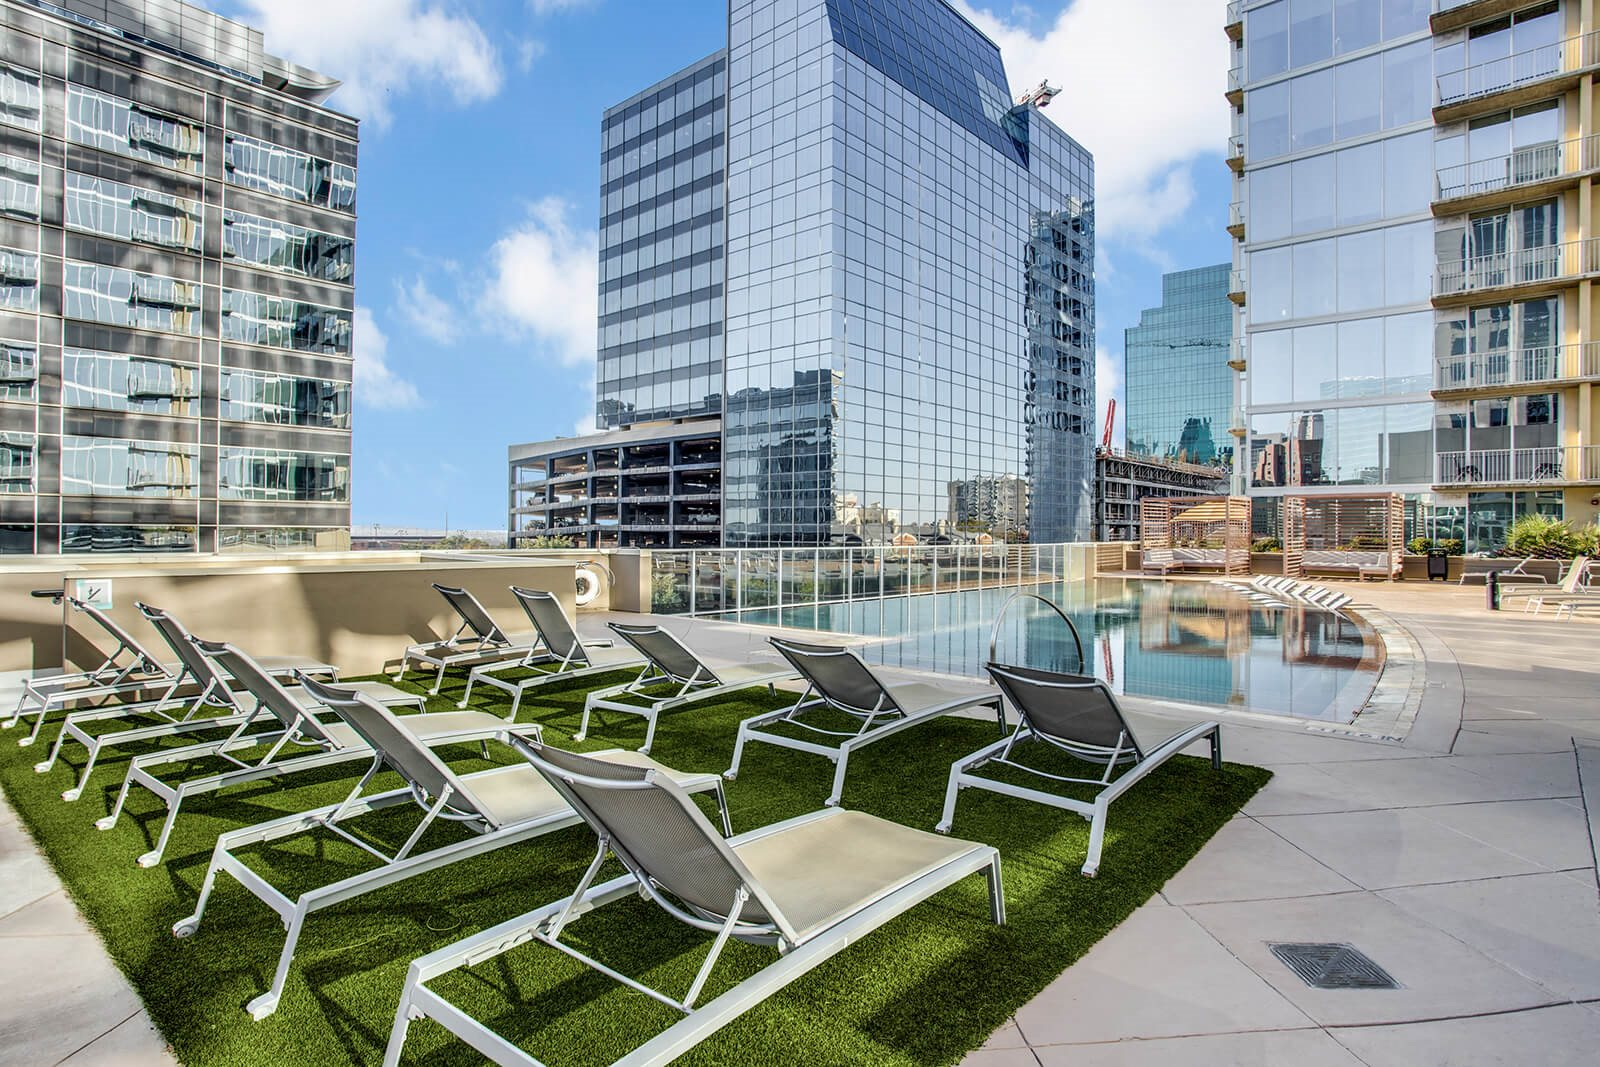 Swimming Pool with Sundeck and Lounge Chairs at Glass House by Windsor, 75201, TX